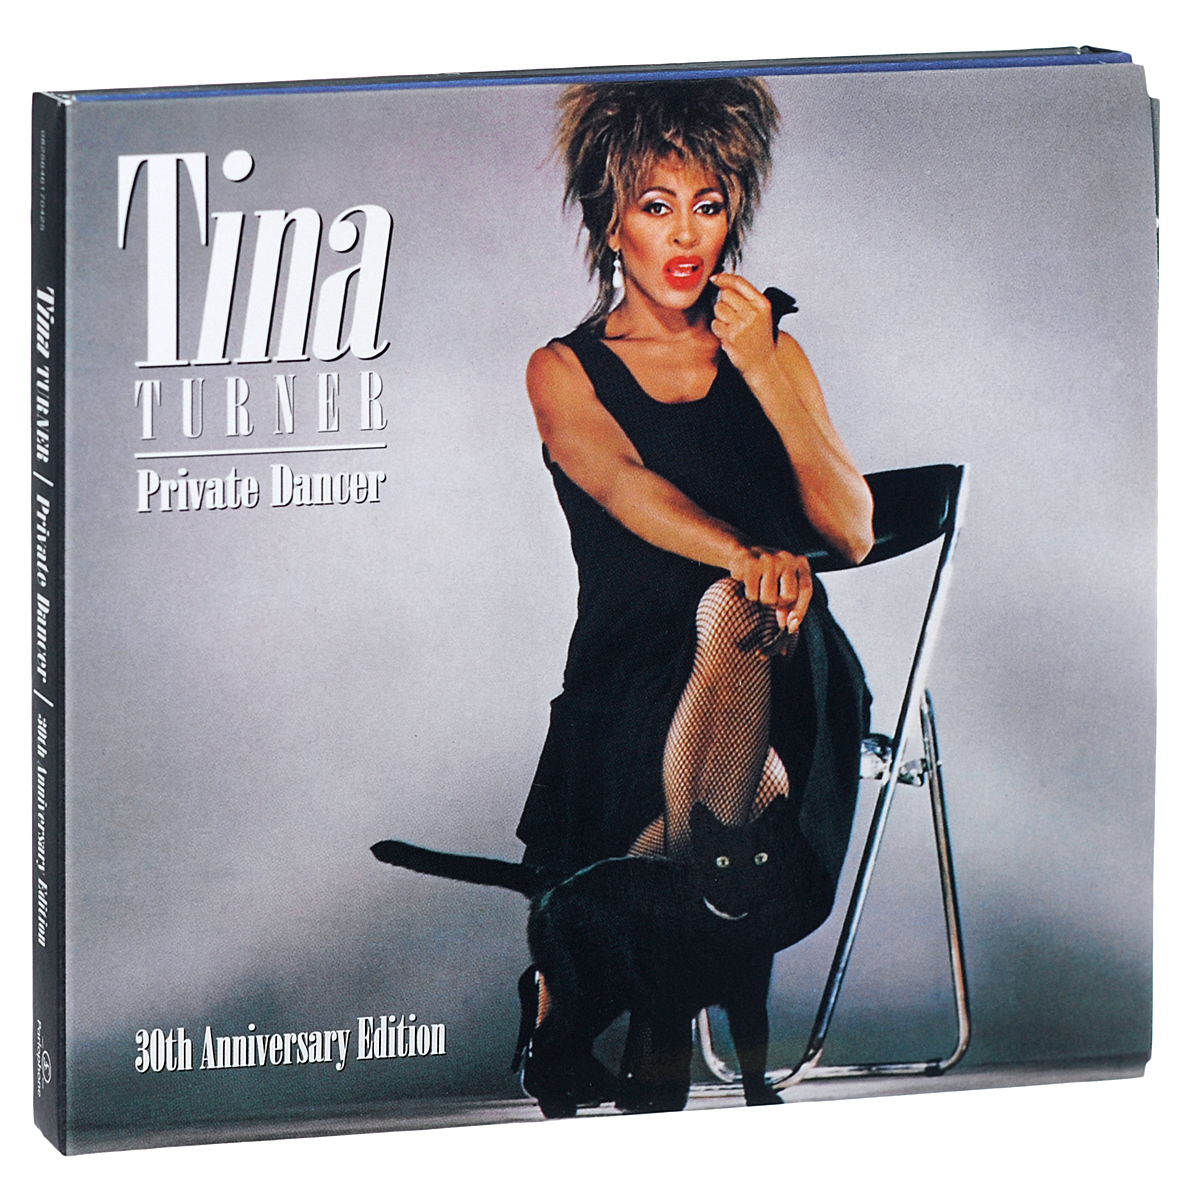 Тина Тернер Tina Turner. Private Dancer. 30th Anniversary Edition (2 CD) carl perkins & friends blue suede shoes a rockabilly session 30th anniversary edition cd dvd